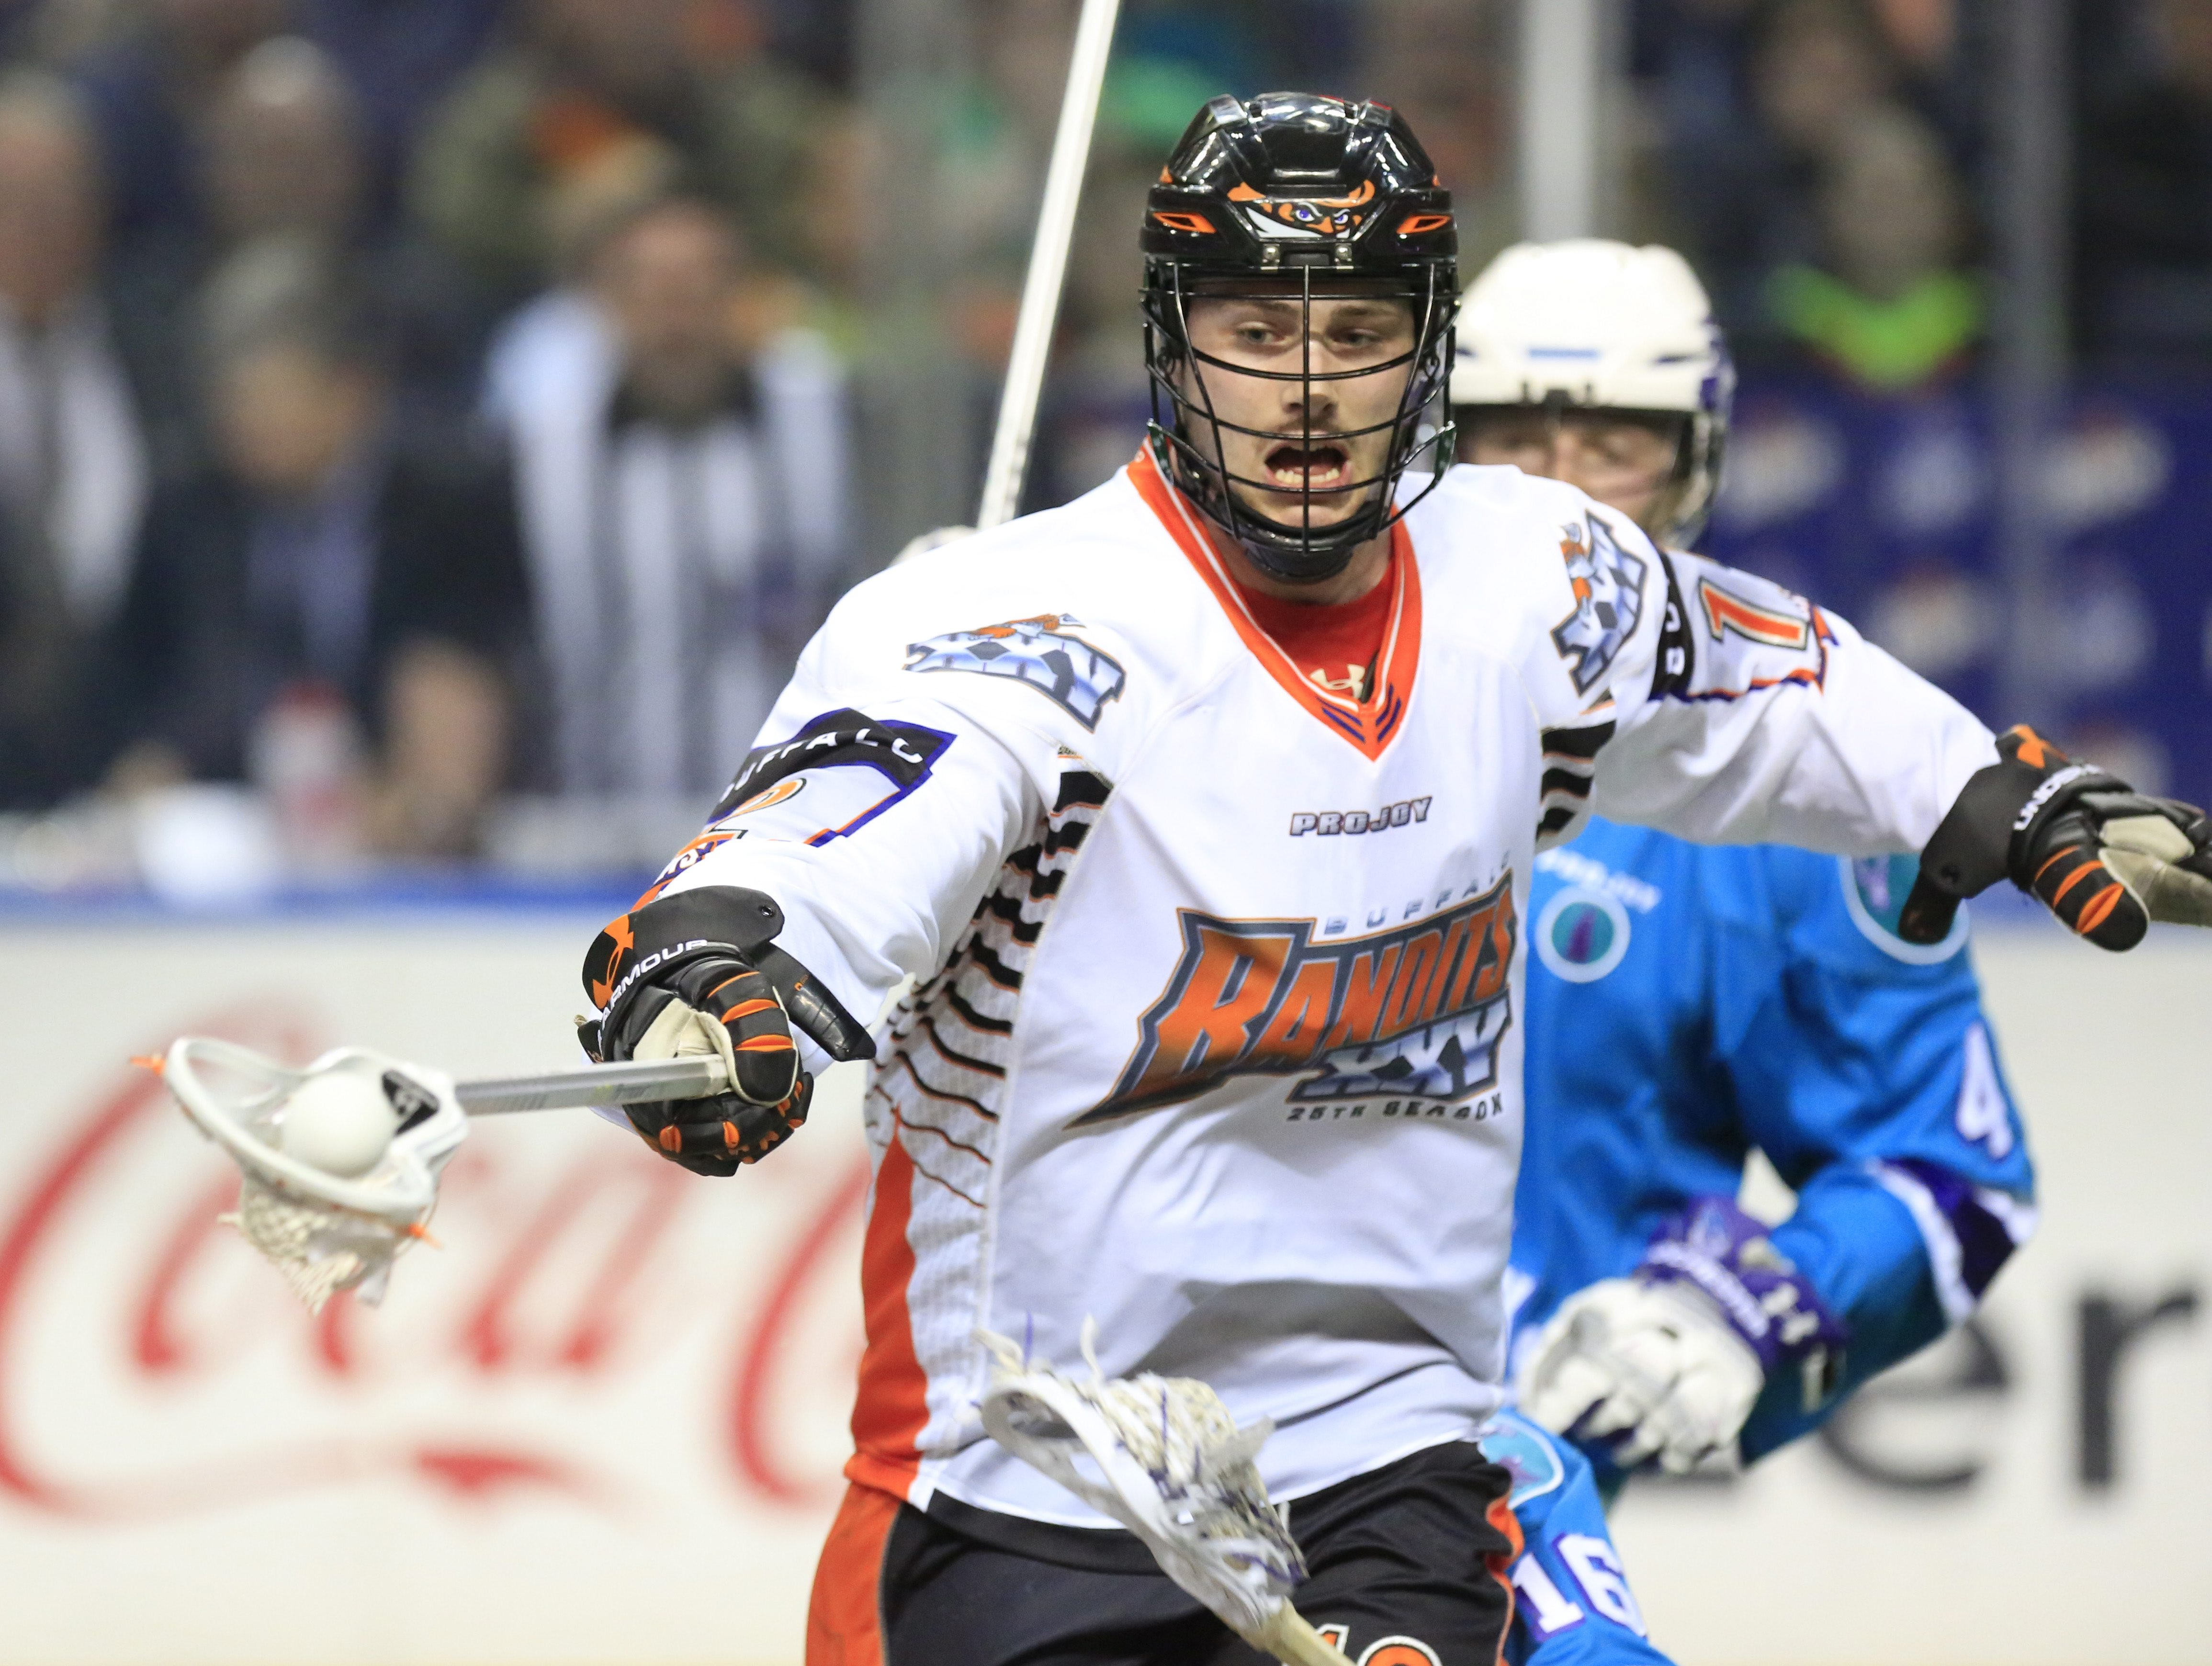 Mitch de Snoo is among many familiar faces back for the Bandits. (Harry Scull Jr./Buffalo News)